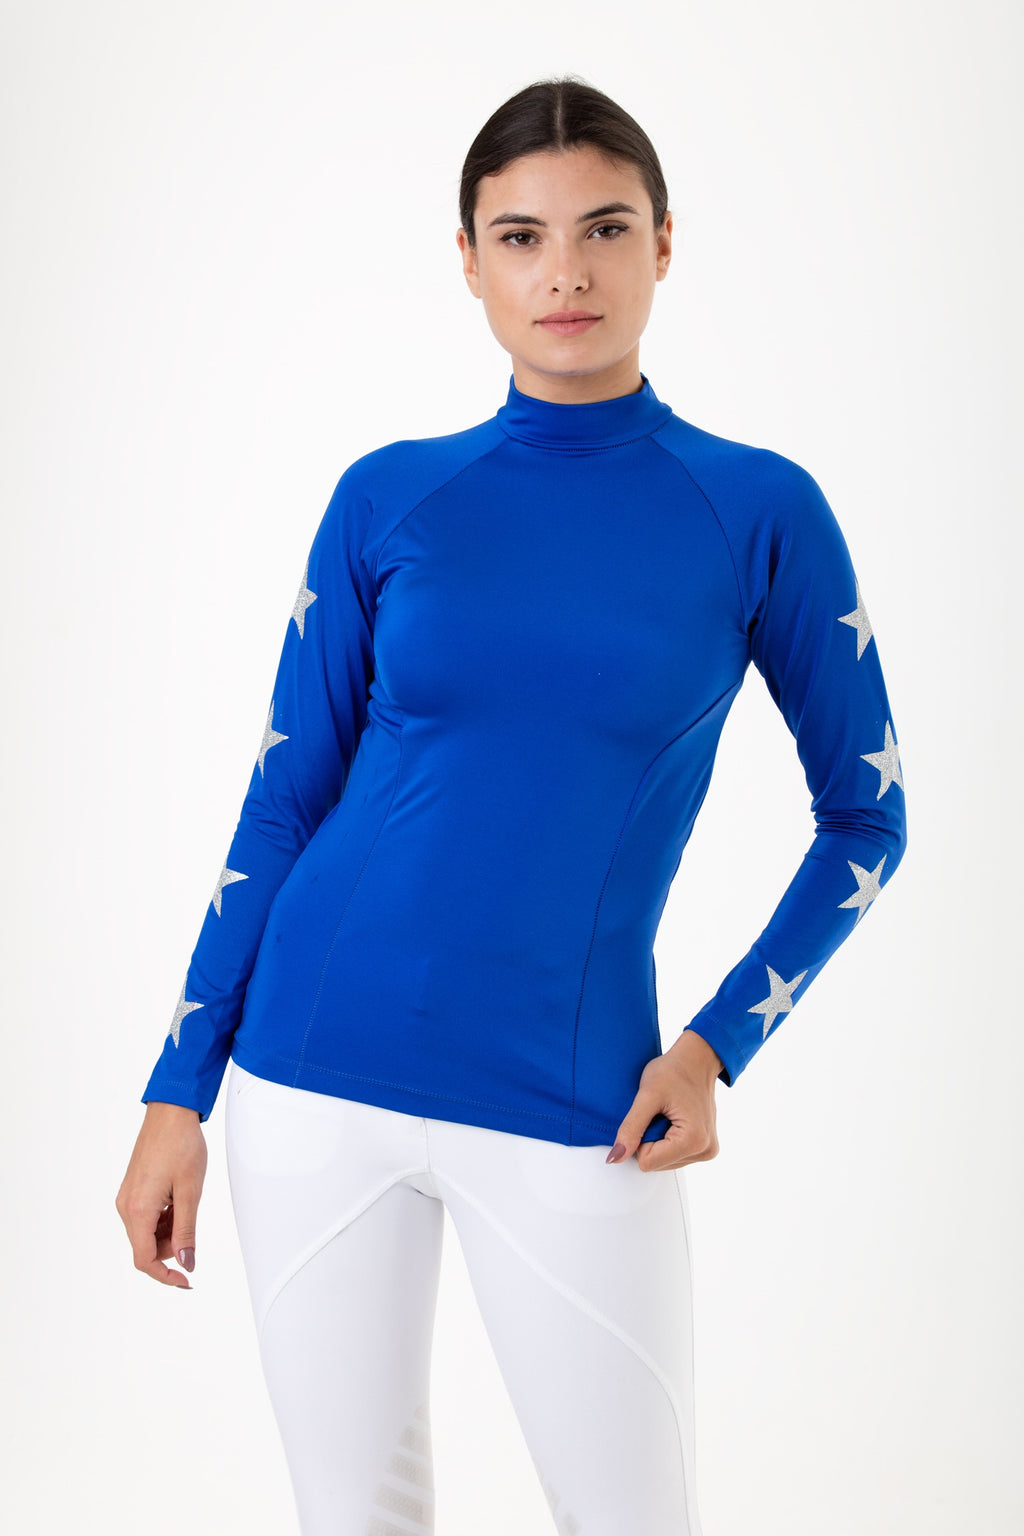 Royal Blue Constellation Baselayer